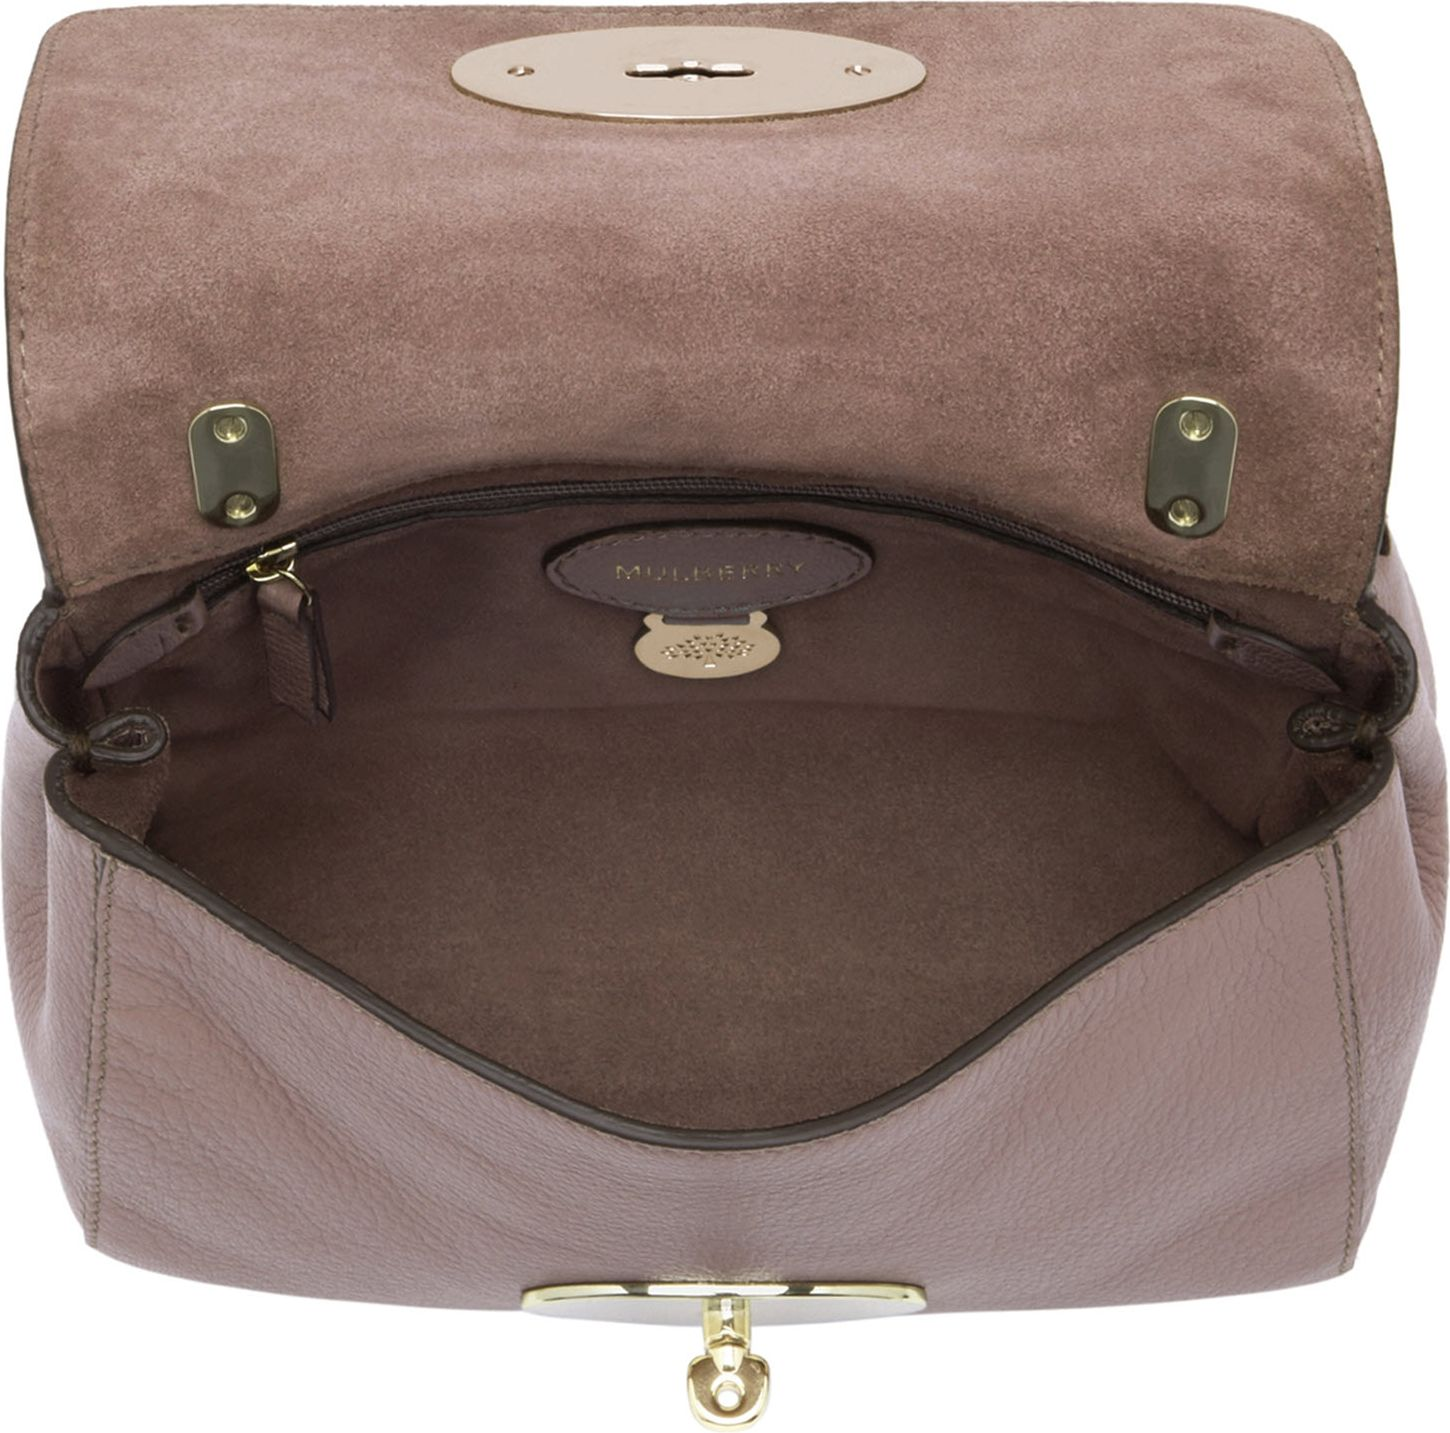 62108f475a87 ... france lily mulberry lyst mulberry lily glossy goat leather shoulder  bag in pink 5d1b7 74eef